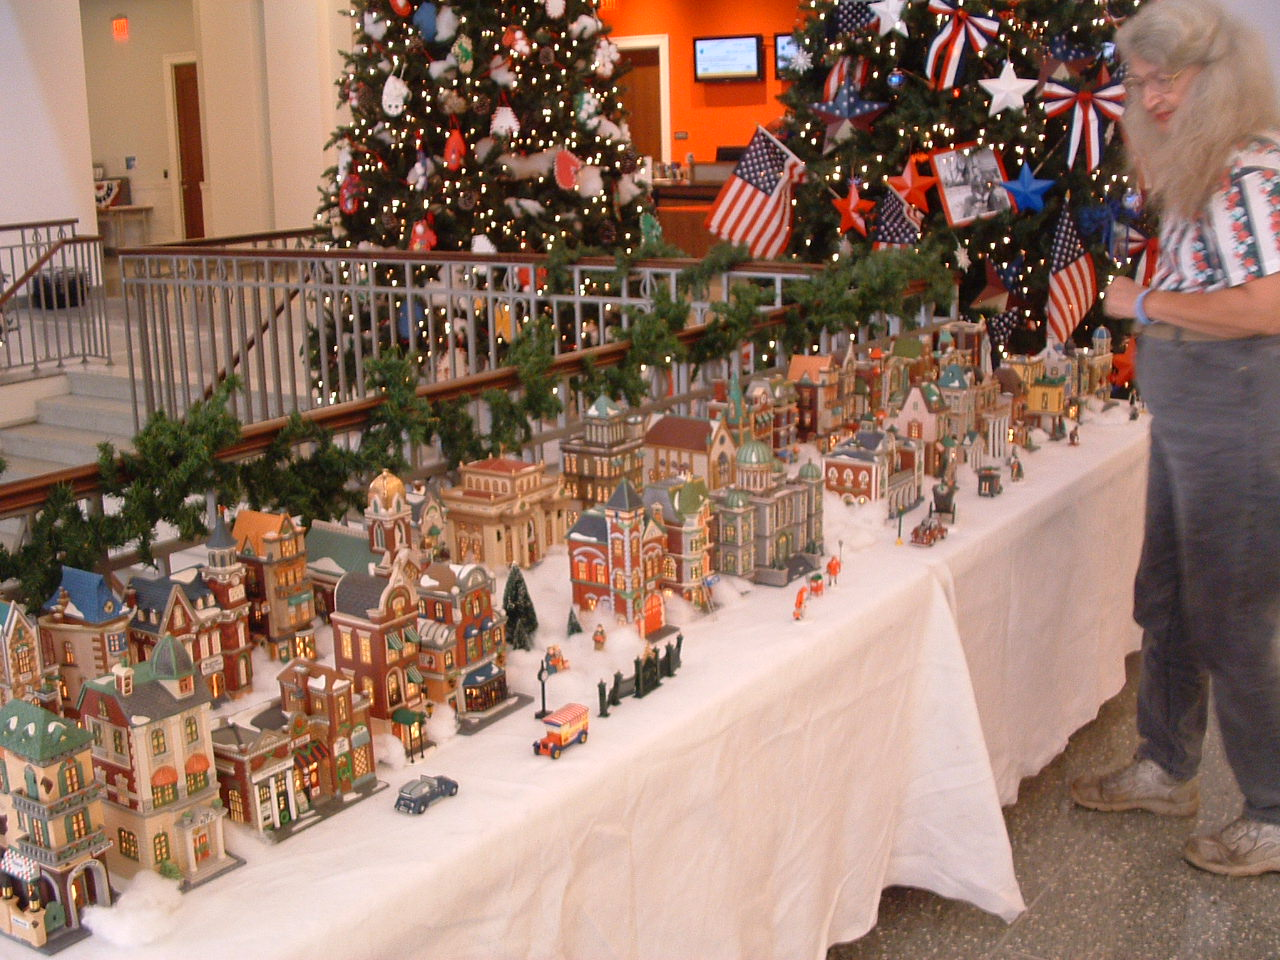 Christmas Village Display.Brackins Blog Christmas Village Display